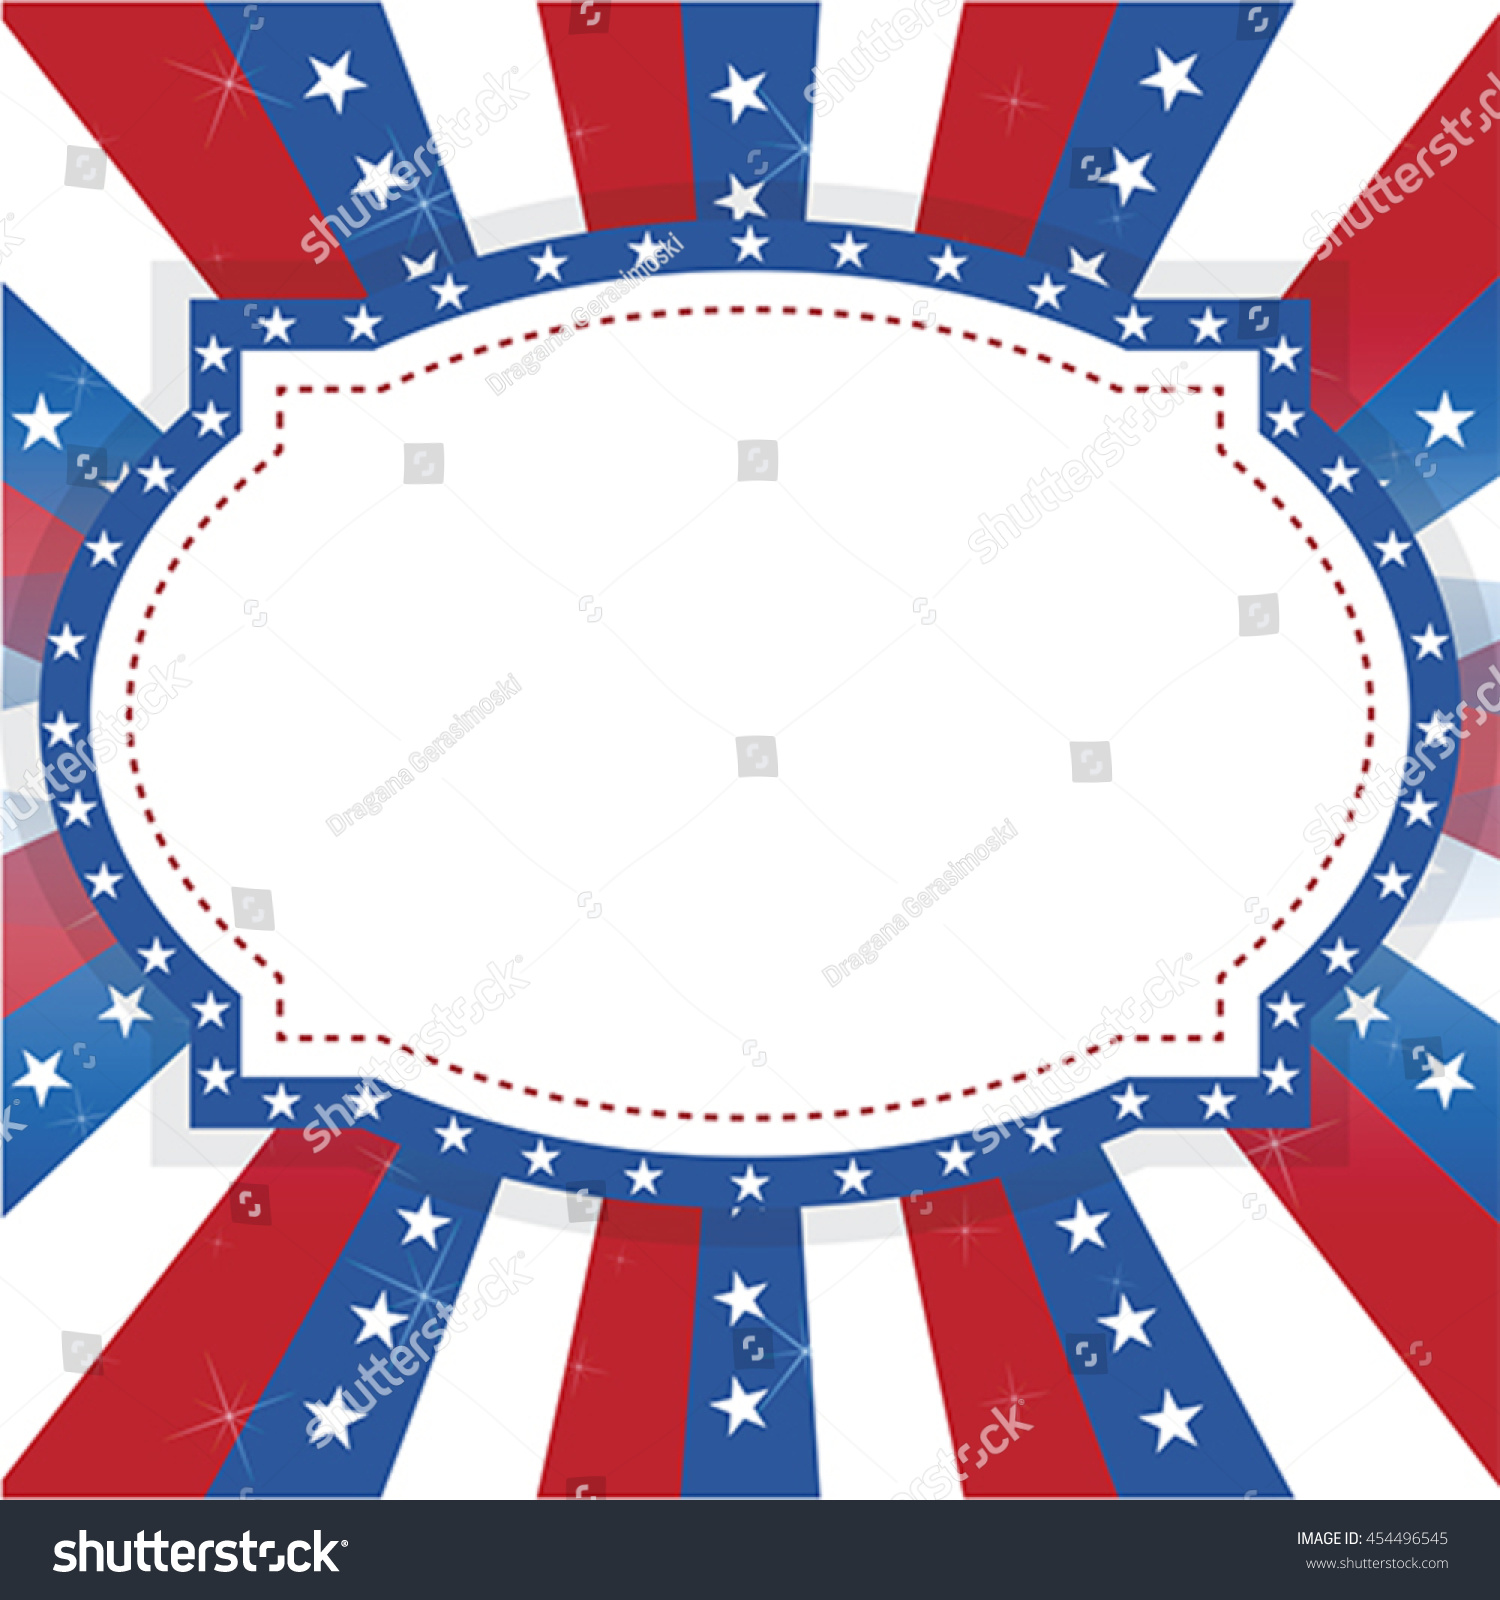 American usa greeting holiday vote card stock vector 454496545 american usa greeting holiday and vote card background vector kristyandbryce Images